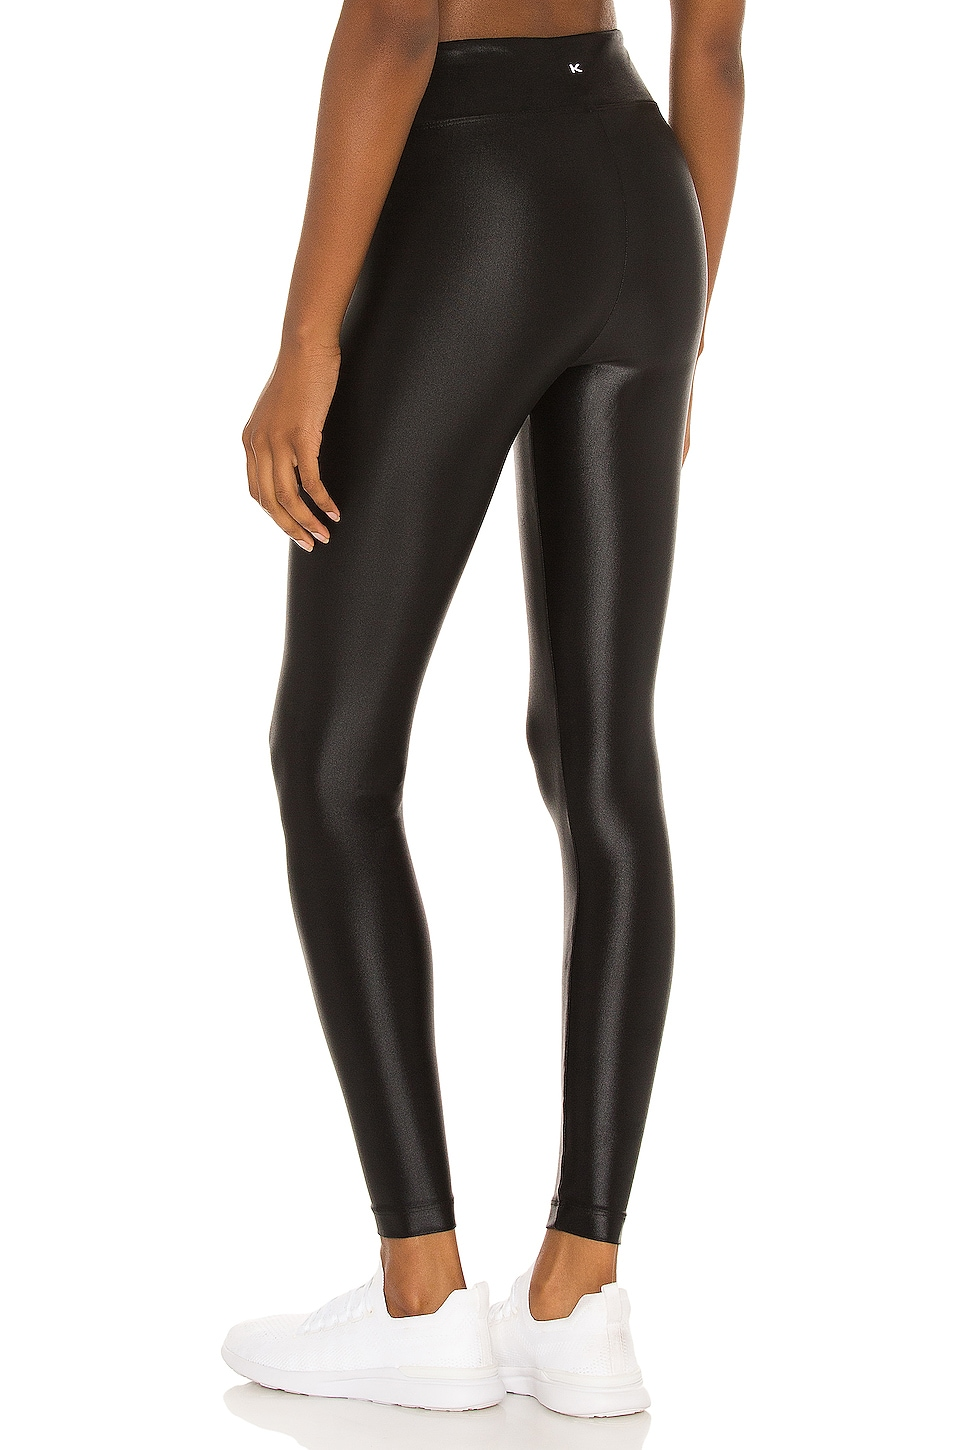 Lustrous High Rise Legging, view 3, click to view large image.